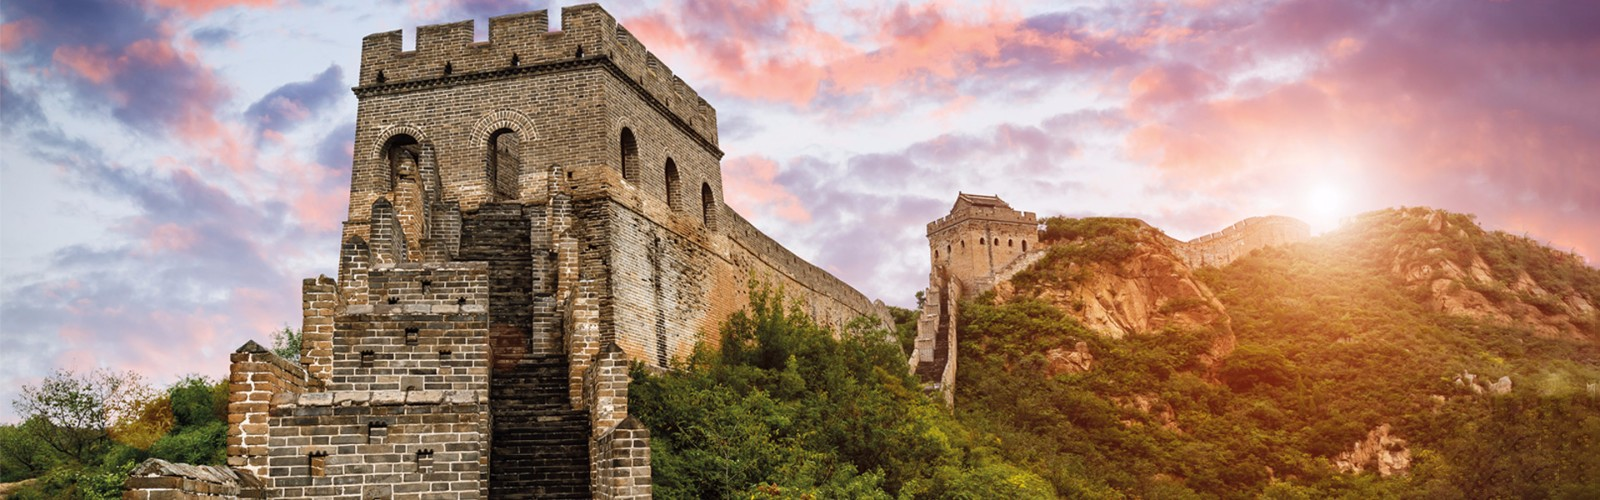 Traveller Readers Tour - China Tour | Wendy Wu Tours